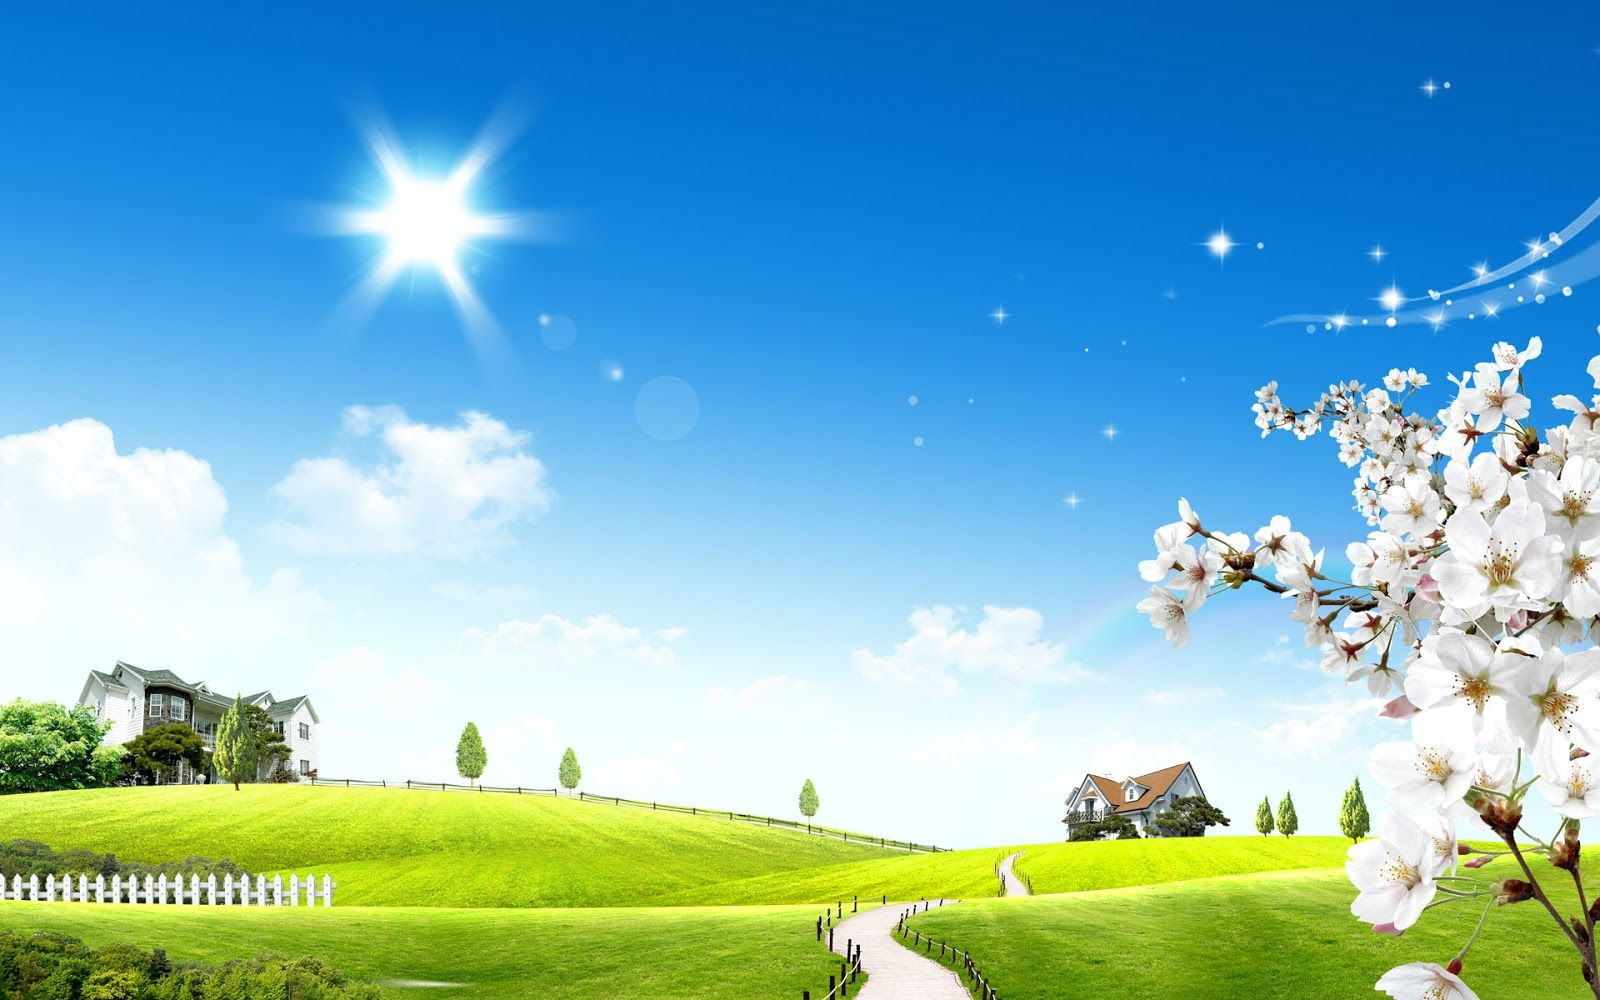 3d Meadow With A Lovely Sunny Day Landscape Wallpaper Beautiful Wallpapers For Iphone Nature Wallpaper